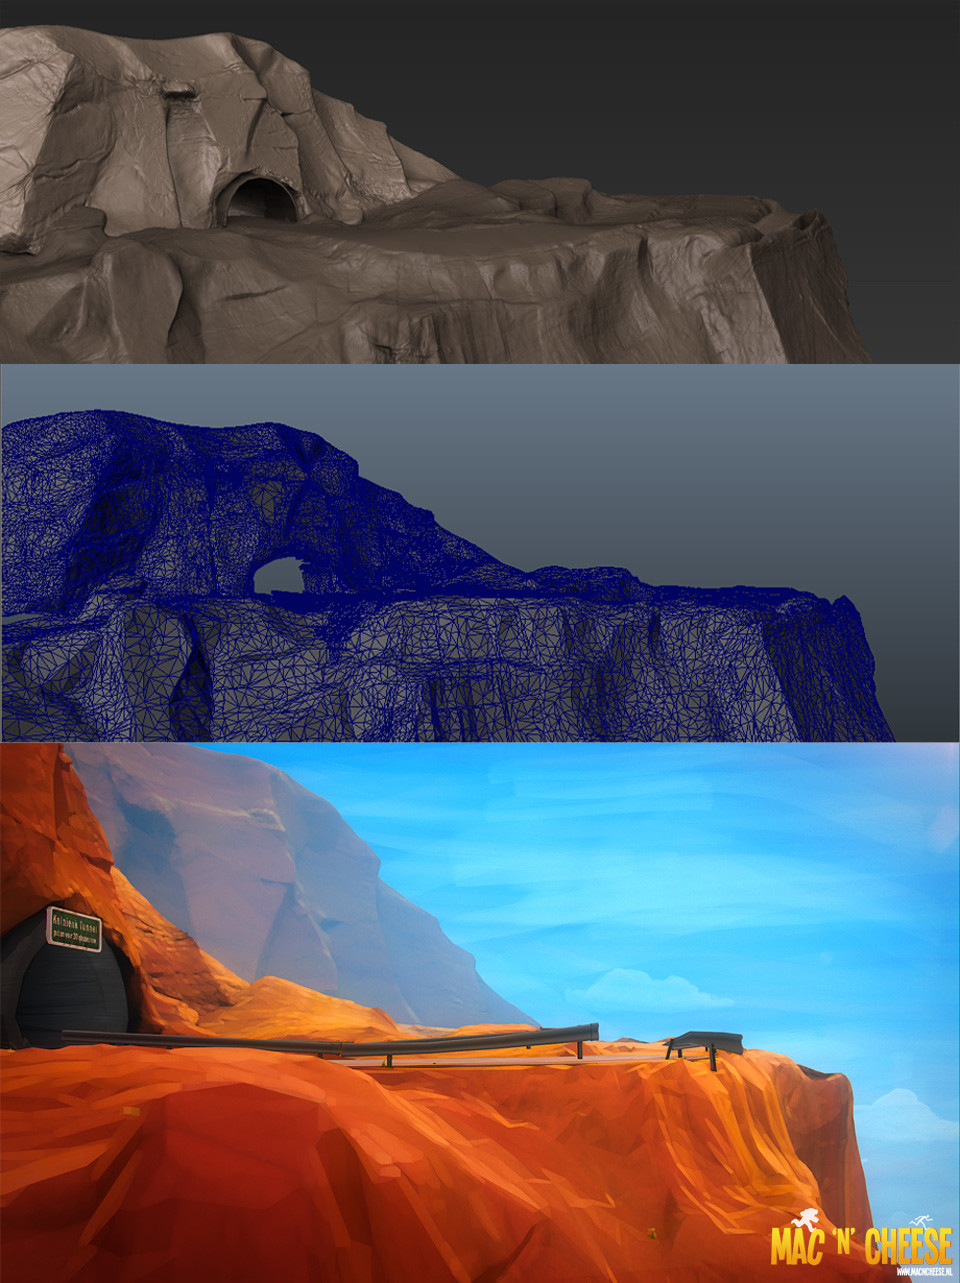 I did all the environmental work, mostly in Zbrush